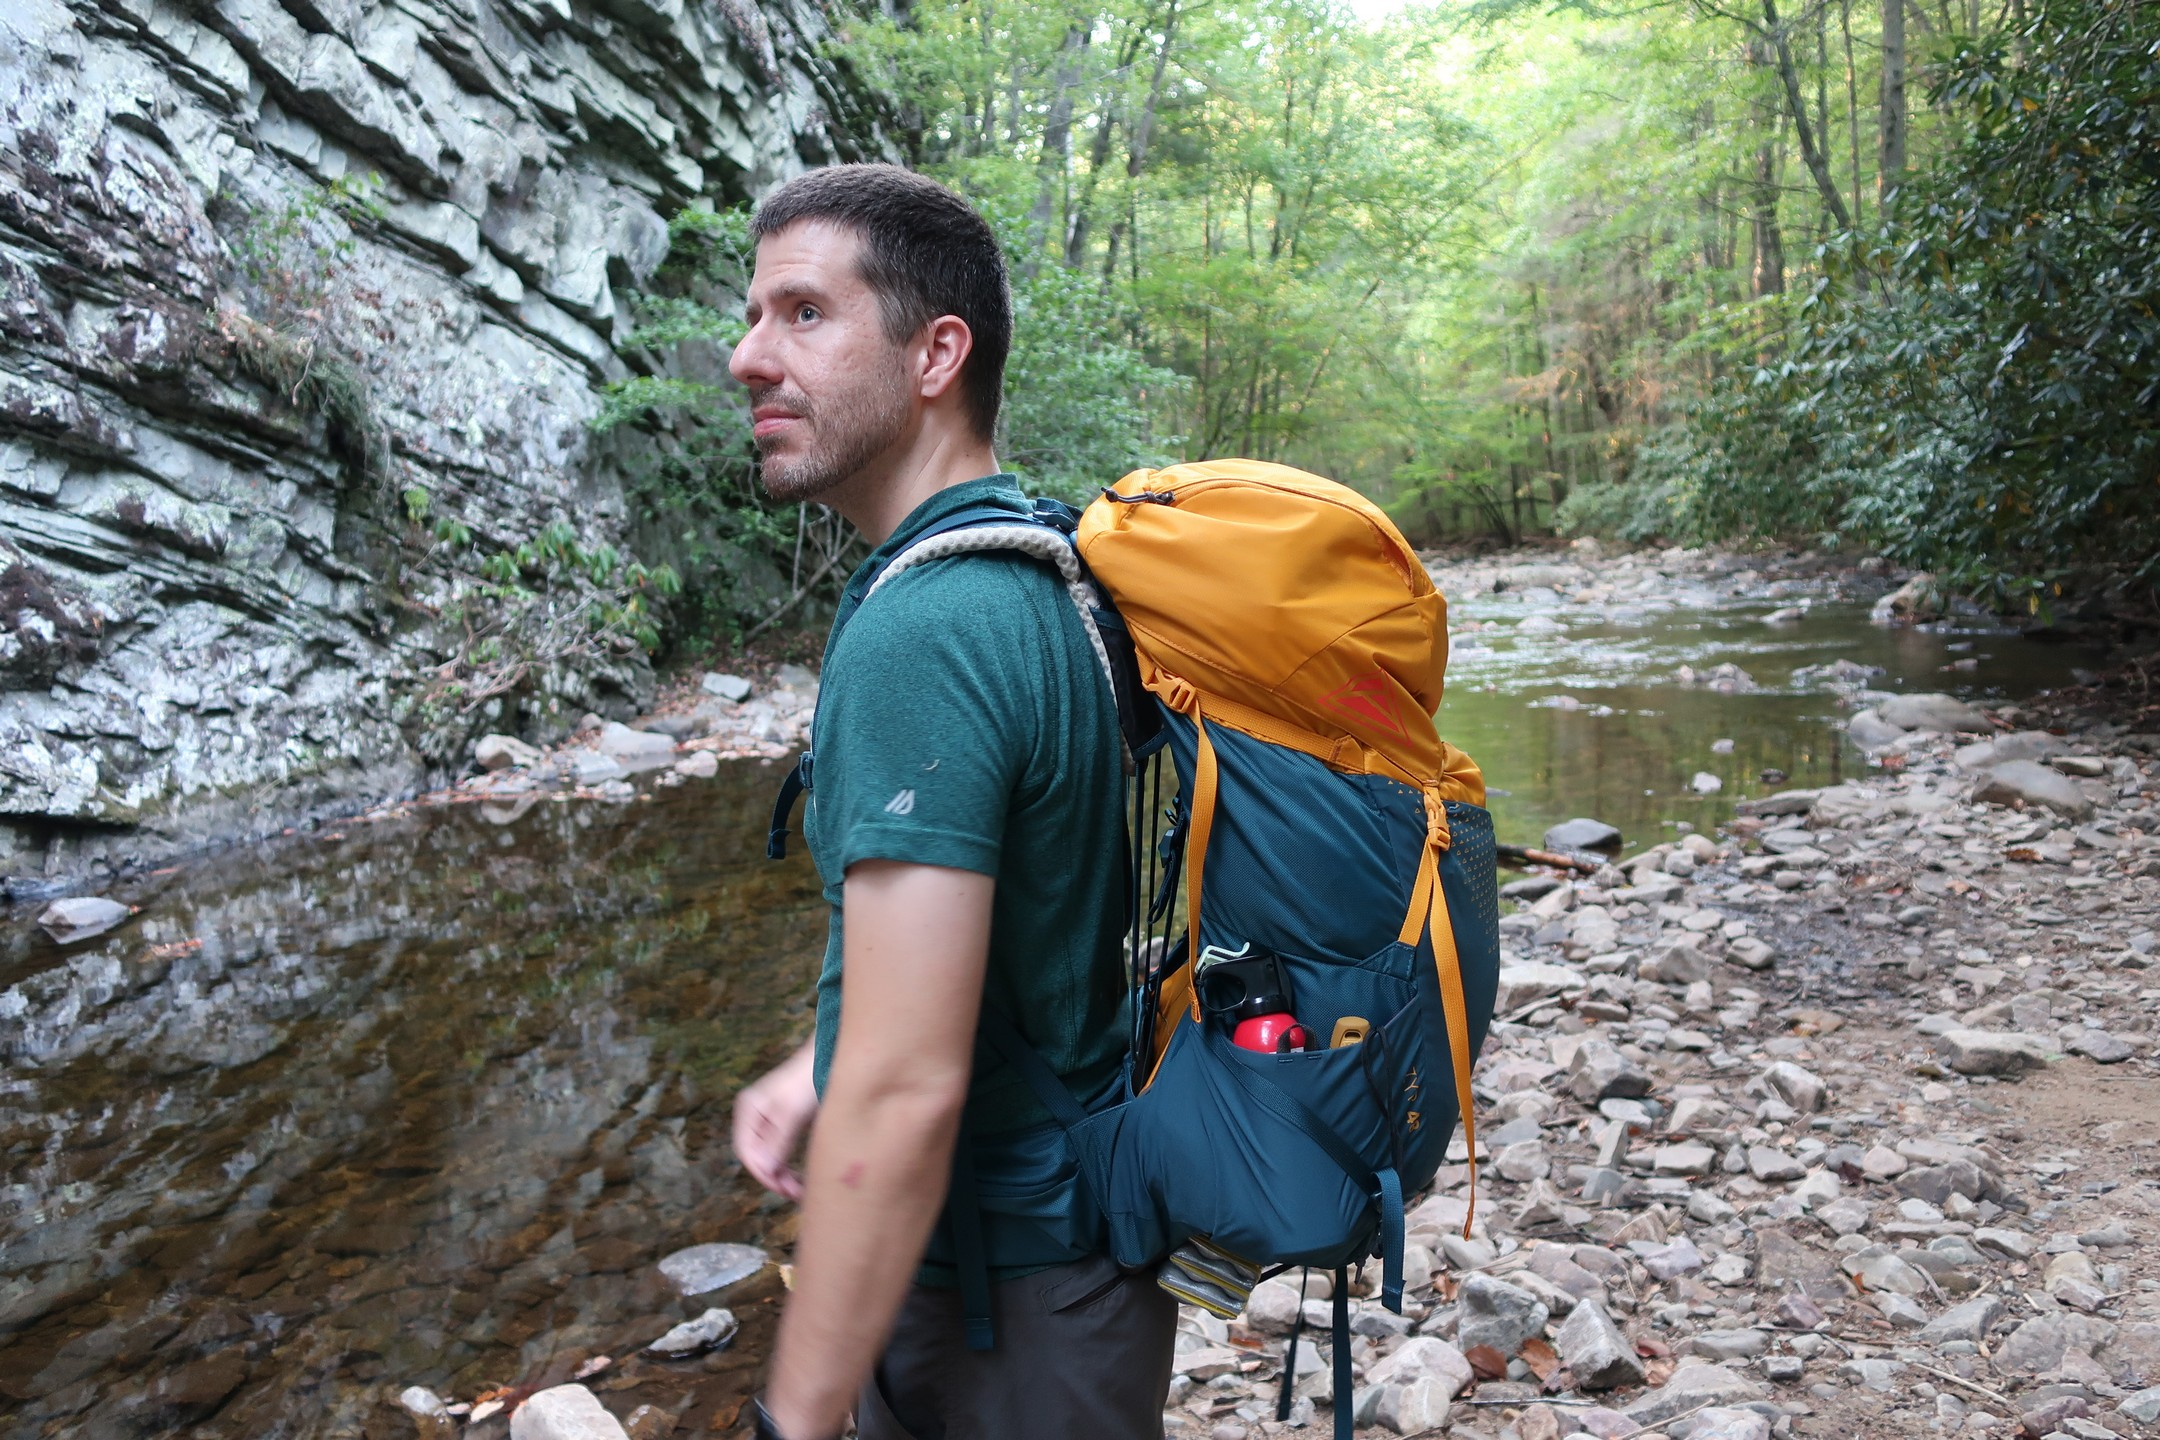 Kelty Zyp 48 backpack review